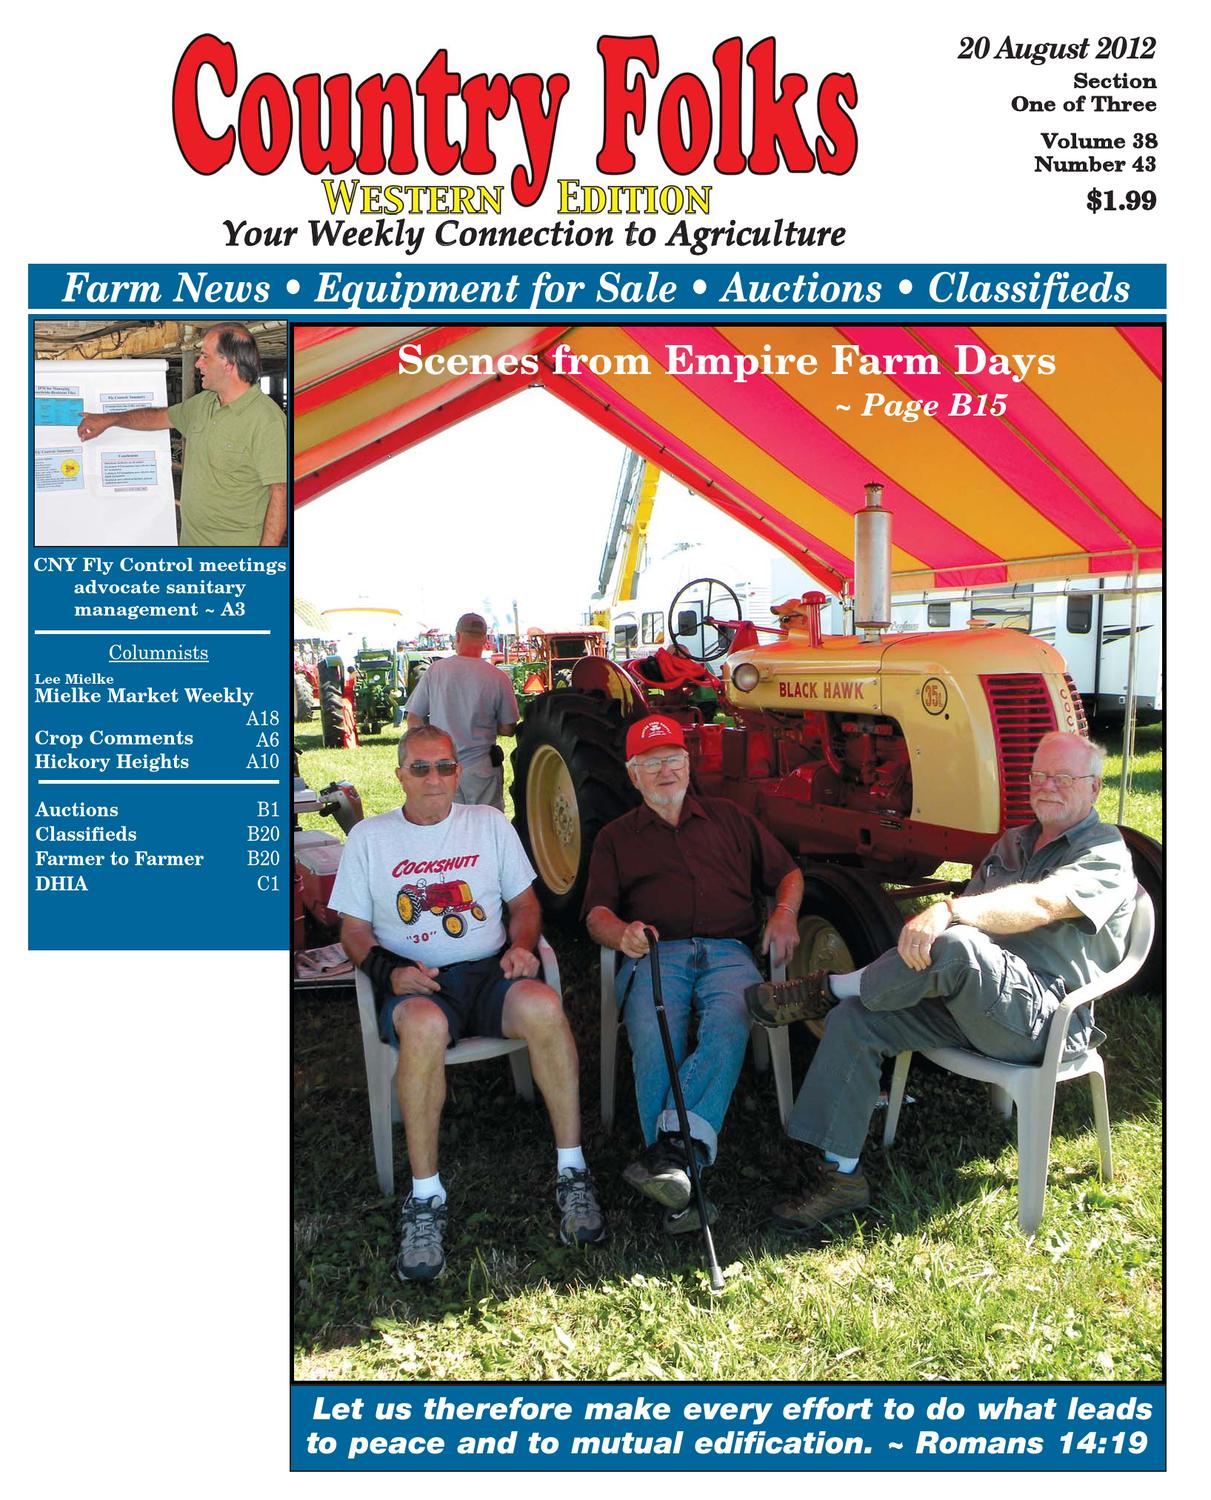 Country Folks West 82012 By Lee Publications Issuu Evtv Motor Verks Store Connecticut Electric 50 Amp 120240 Volt Power